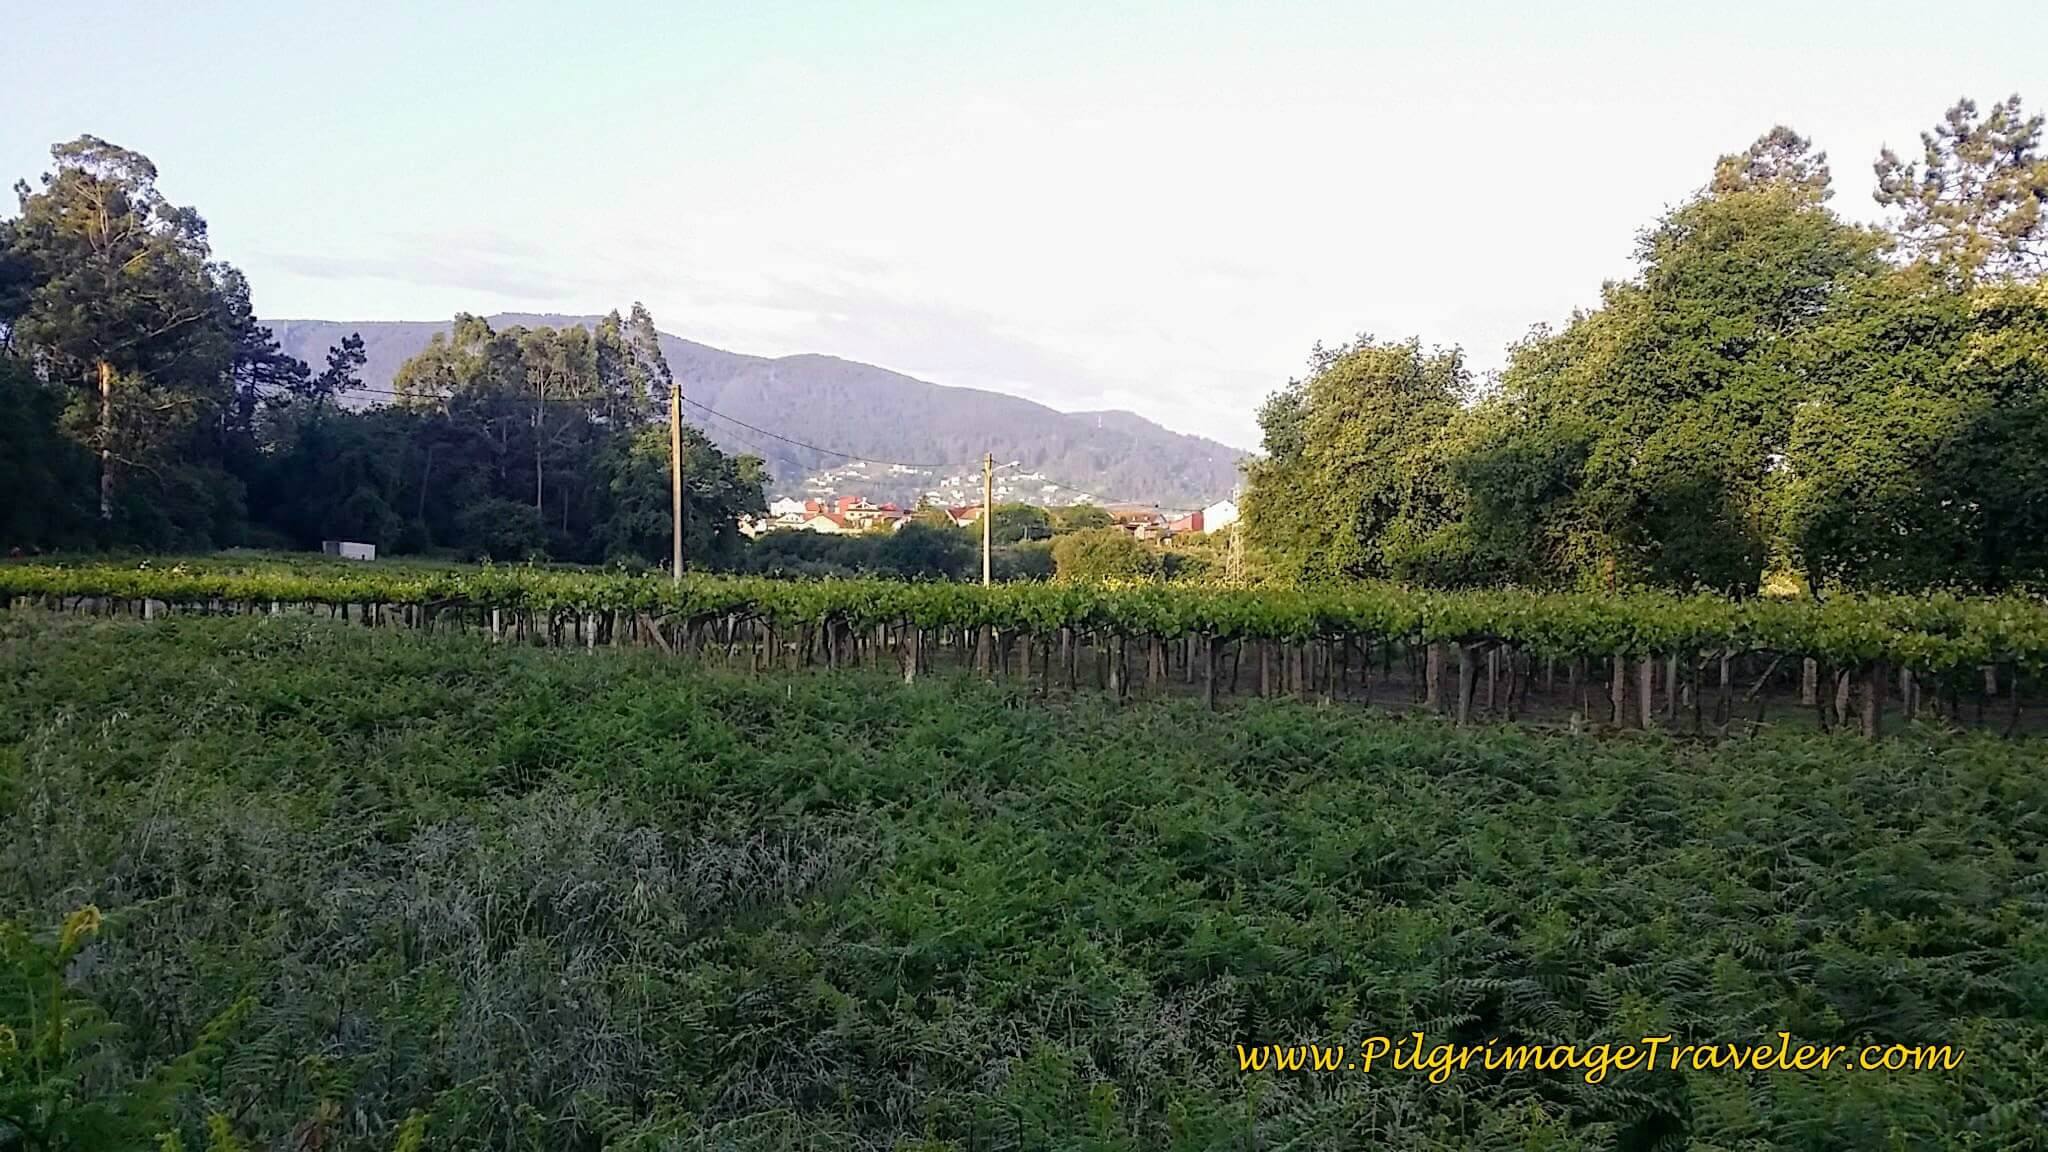 Bountiful and Plentiful Vineyards, day twenty-two on the Camino Portugués